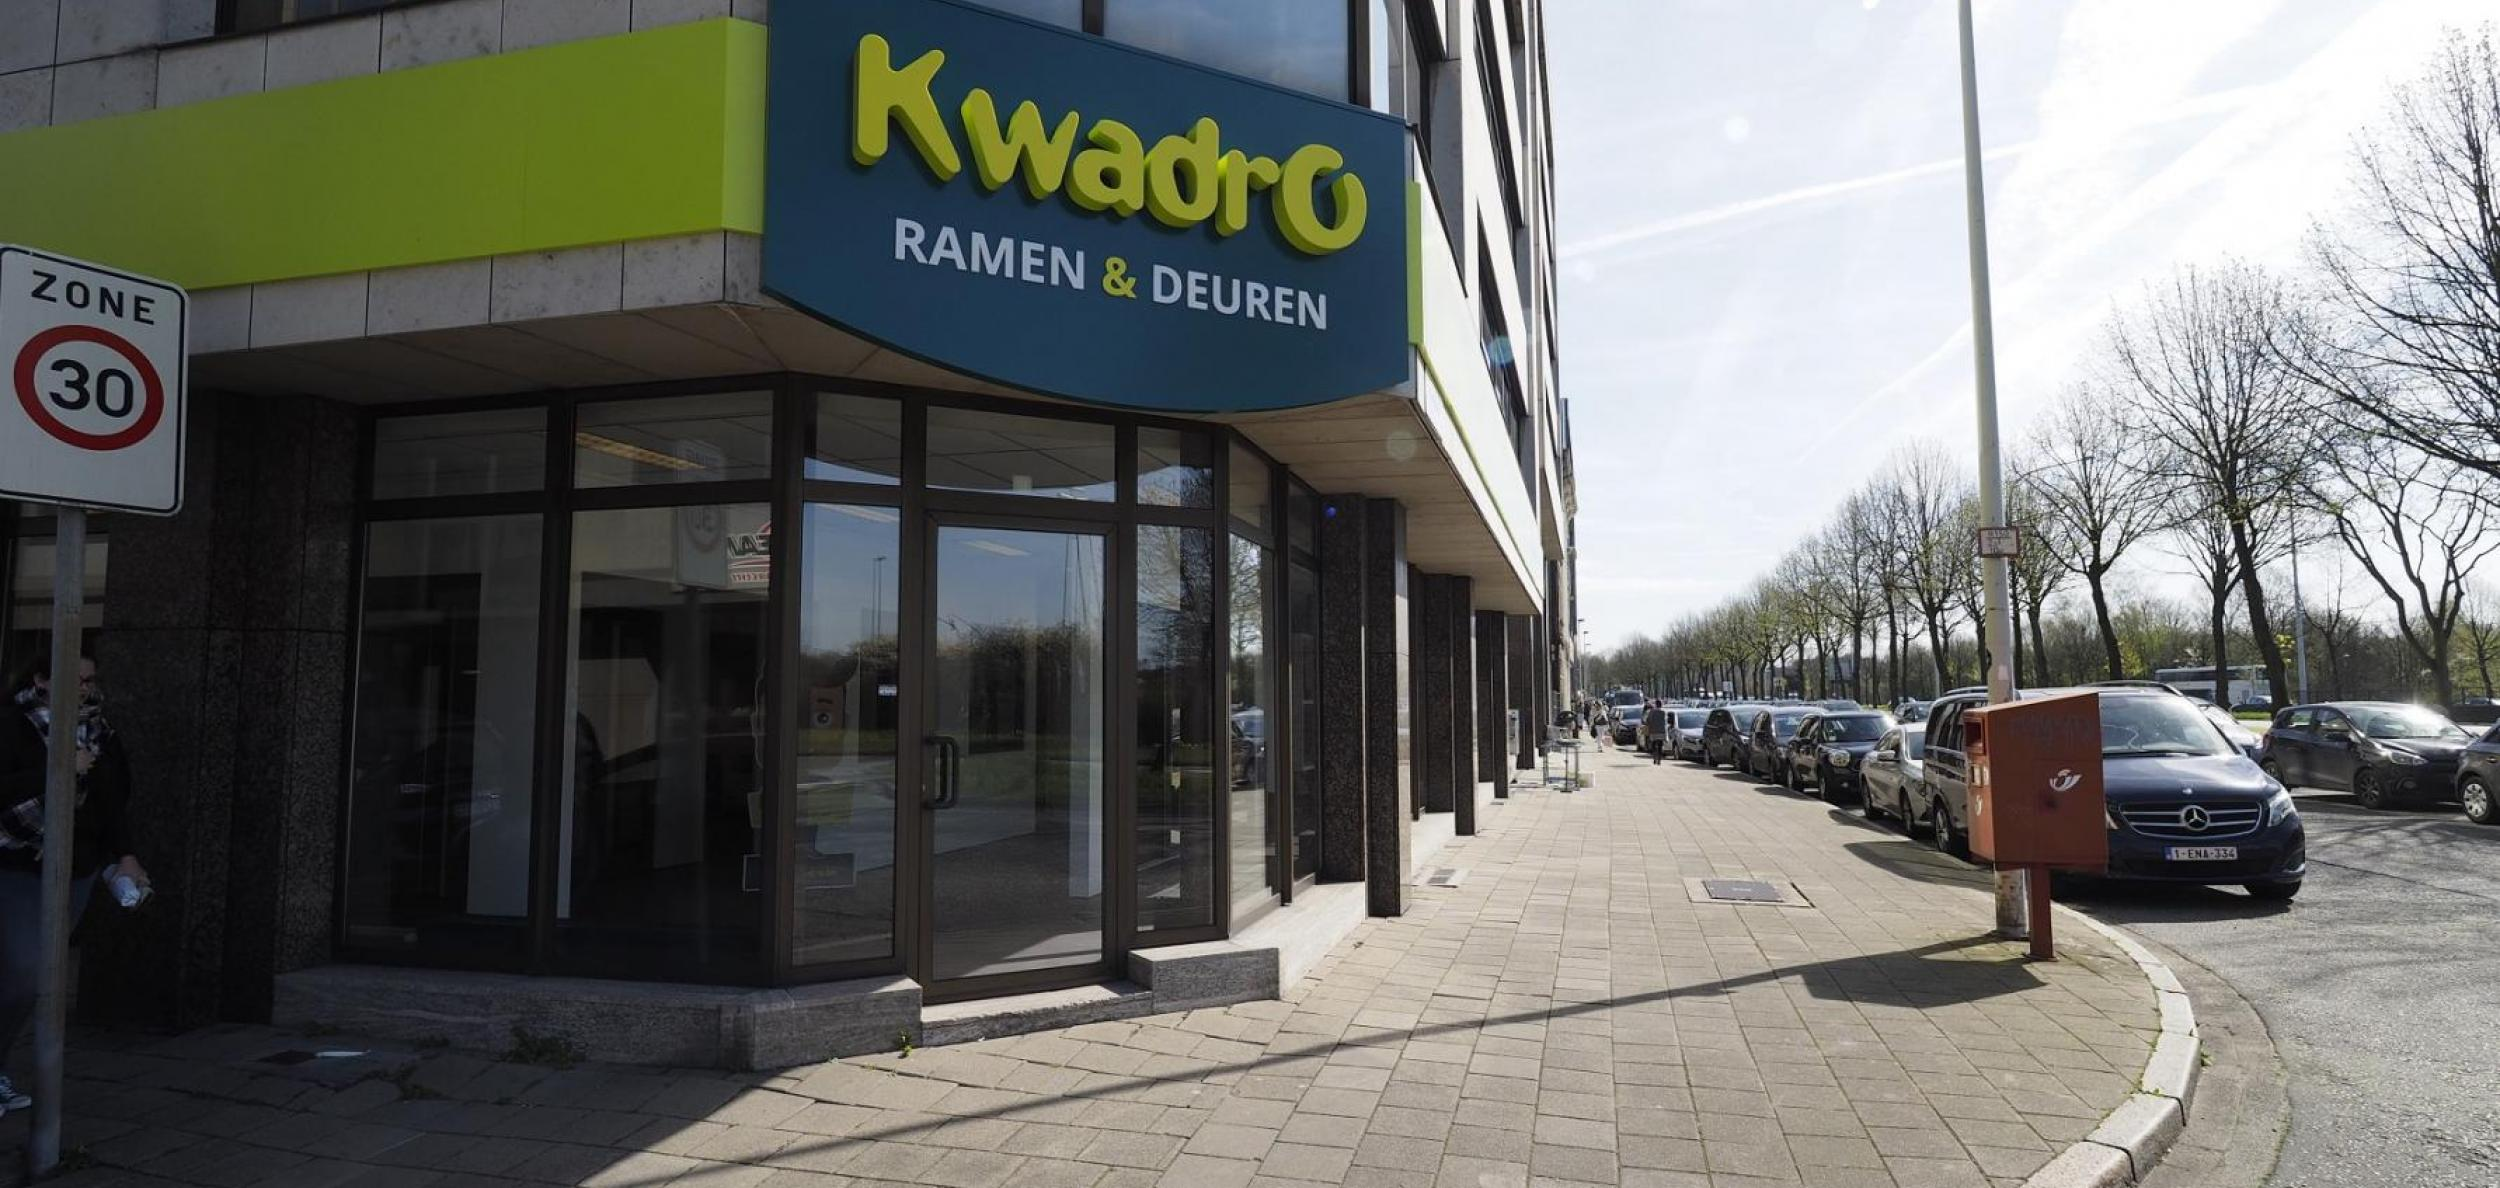 KwadrO Berchem | Showroom